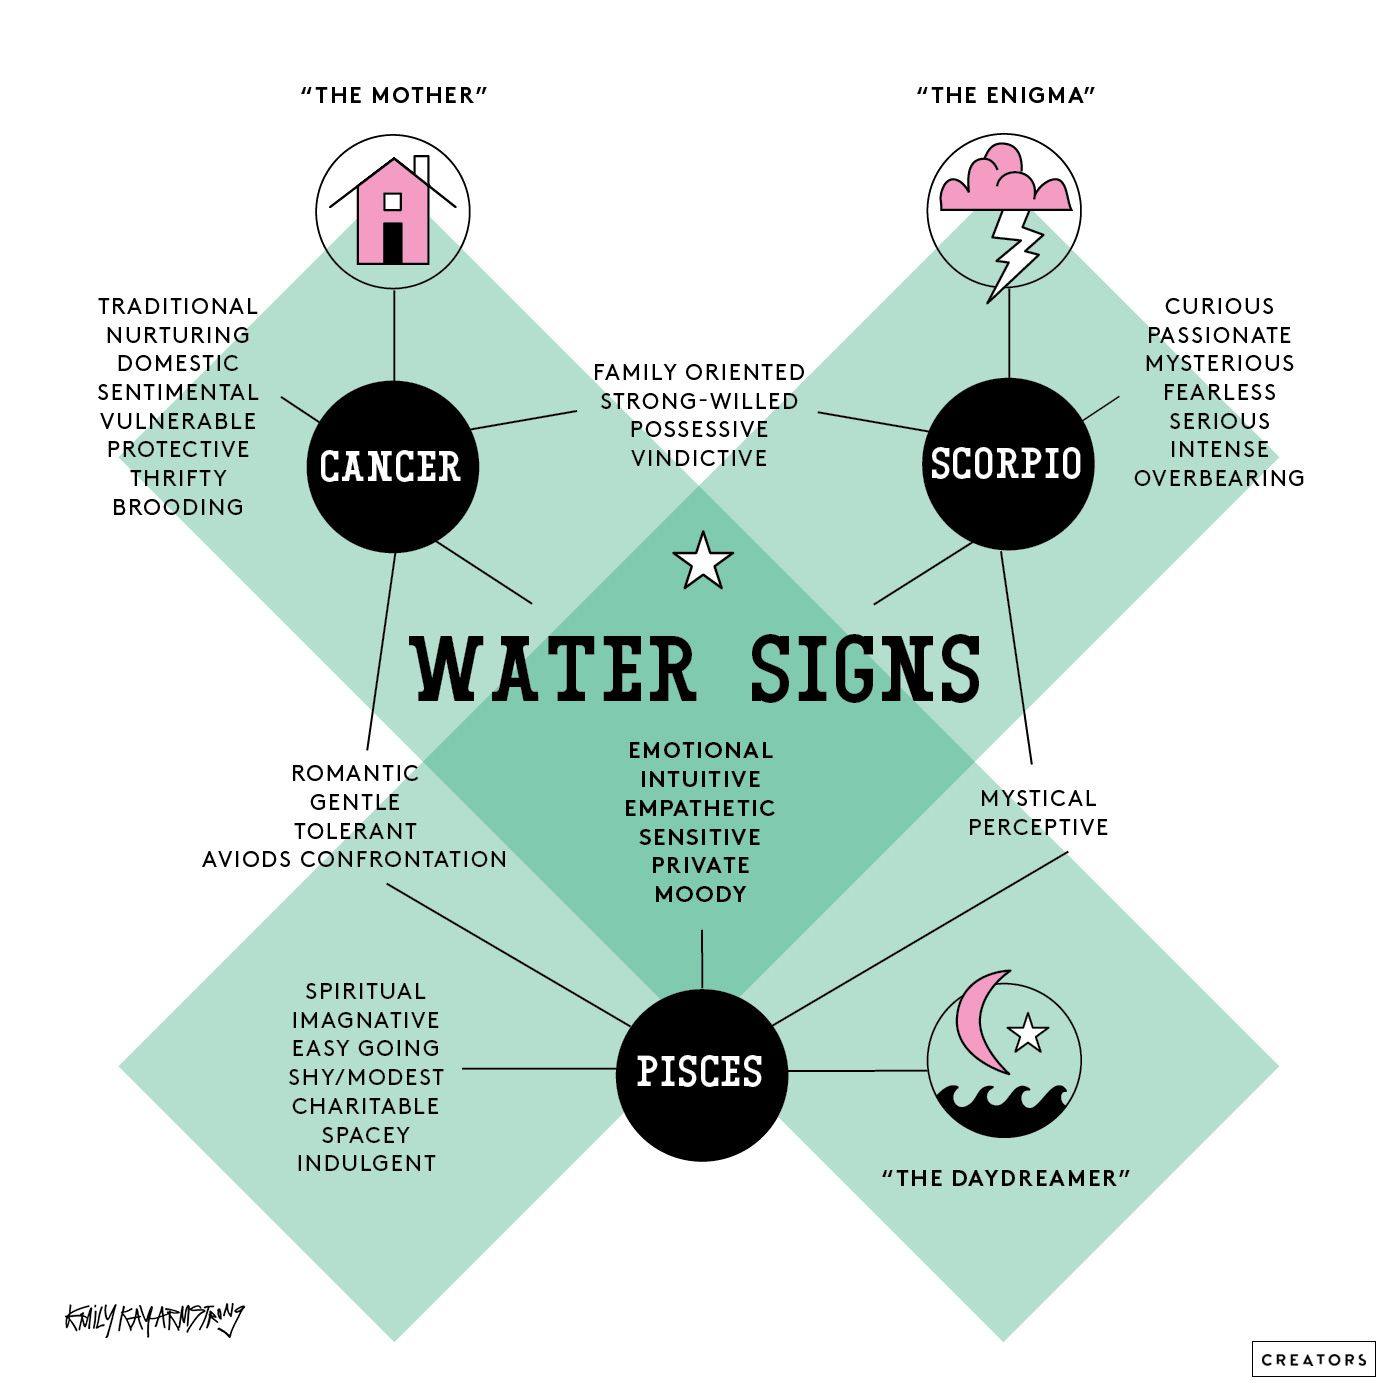 Discover More About Your Sign With These Genius Astrology